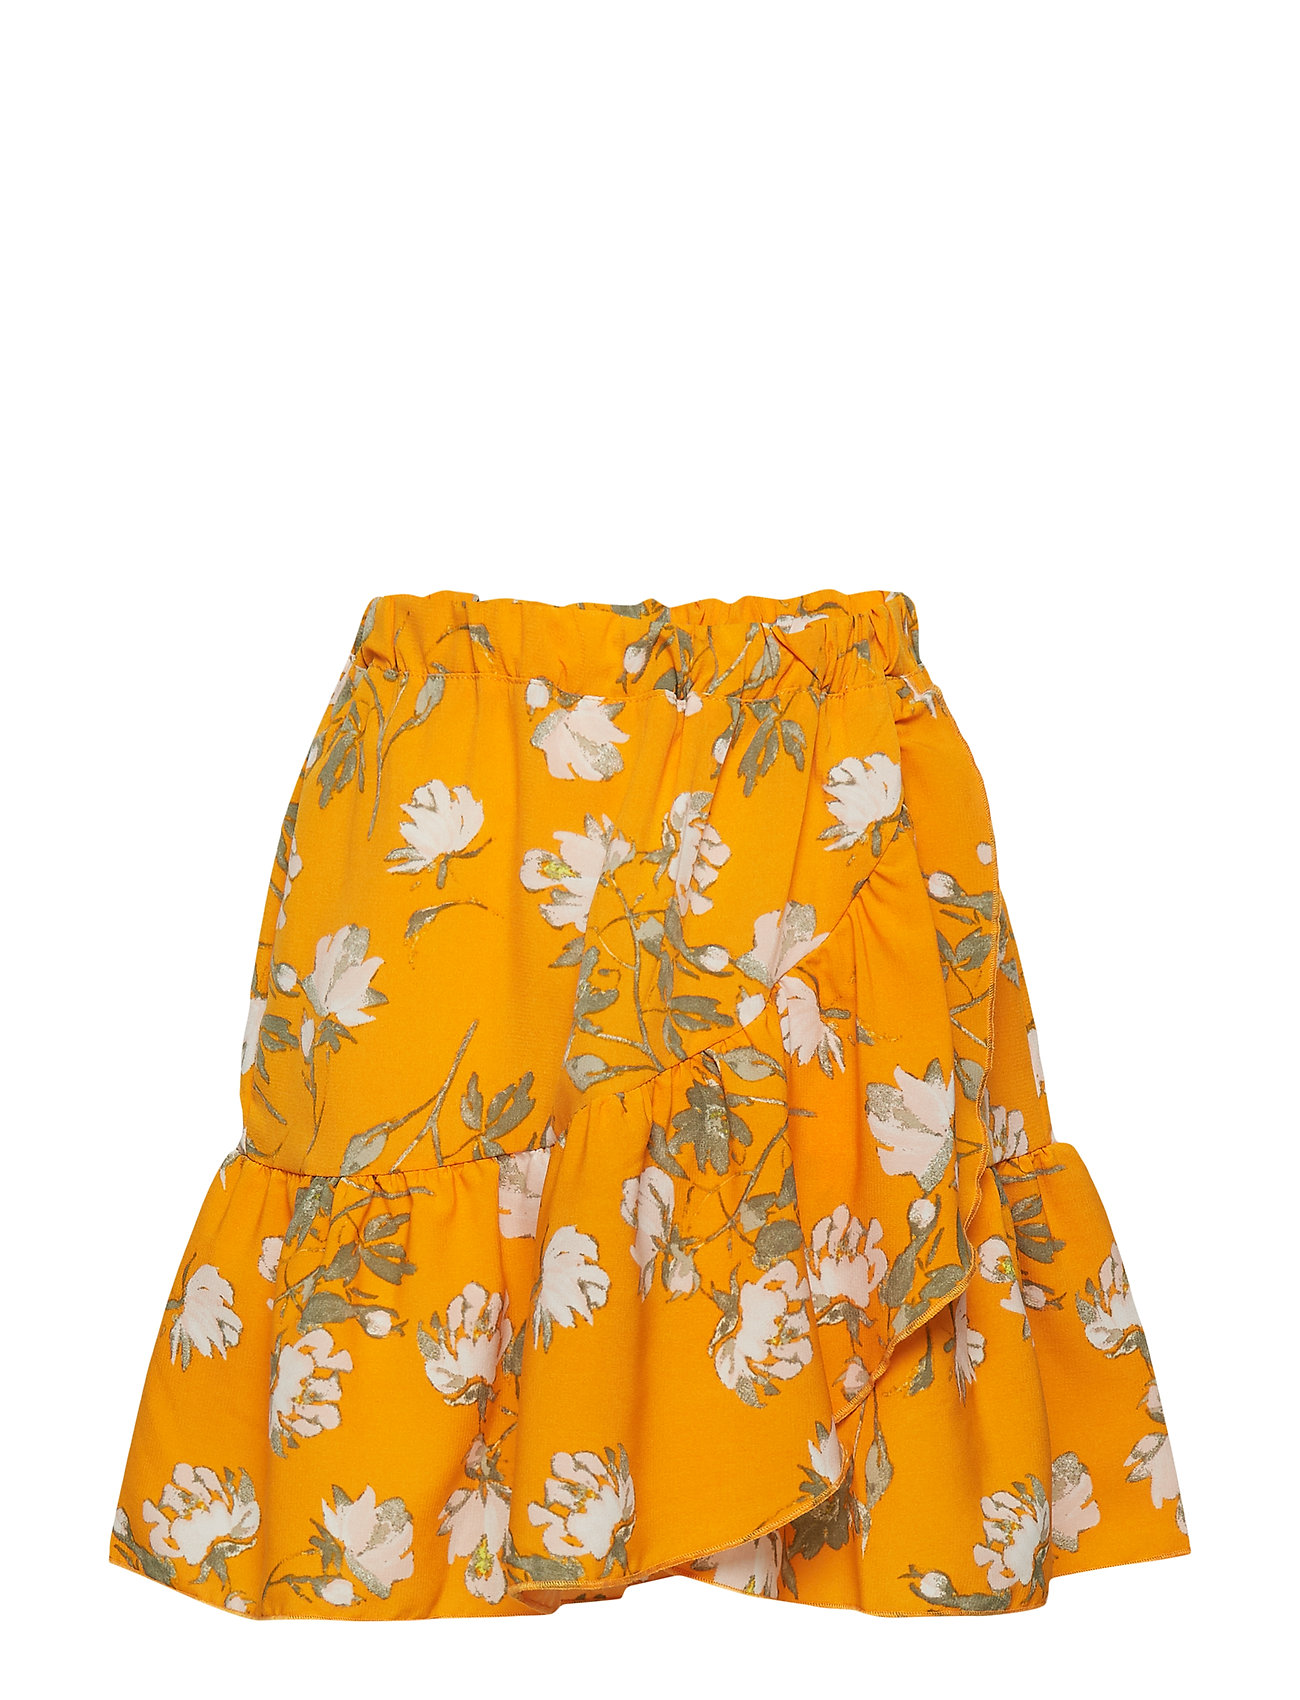 Image of Nkfvinaya Wrap Skirt K Nederdel Orange NAME IT (3191340573)